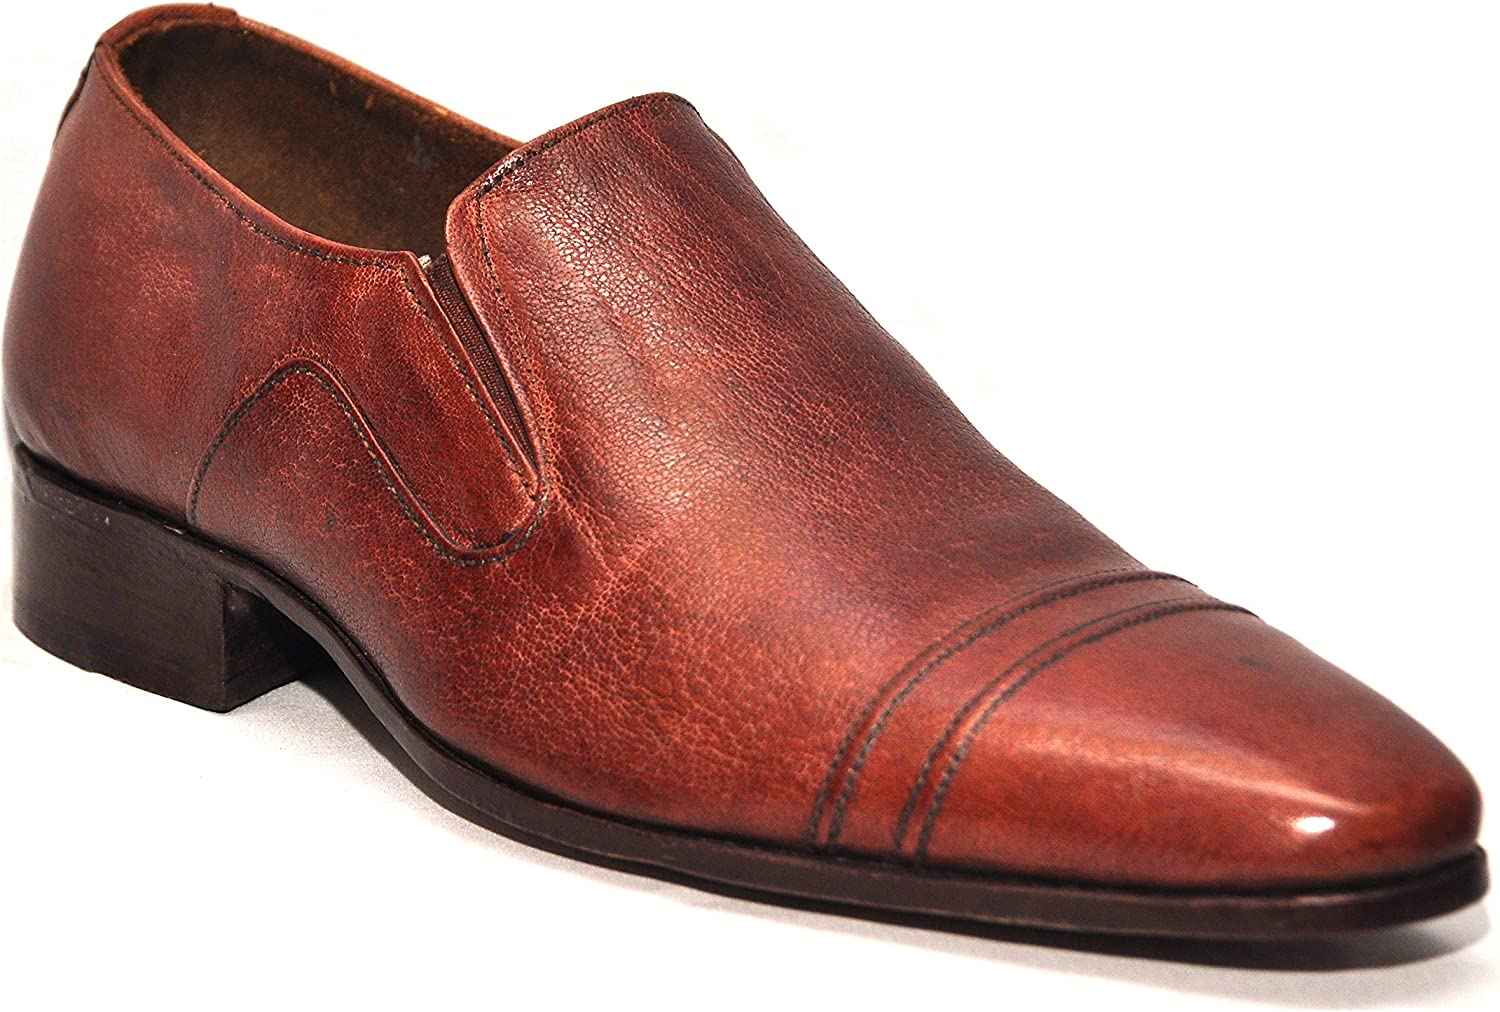 Johny Weber Handmade Side Elastic Brown Leather shoes with Hand Welted Construction